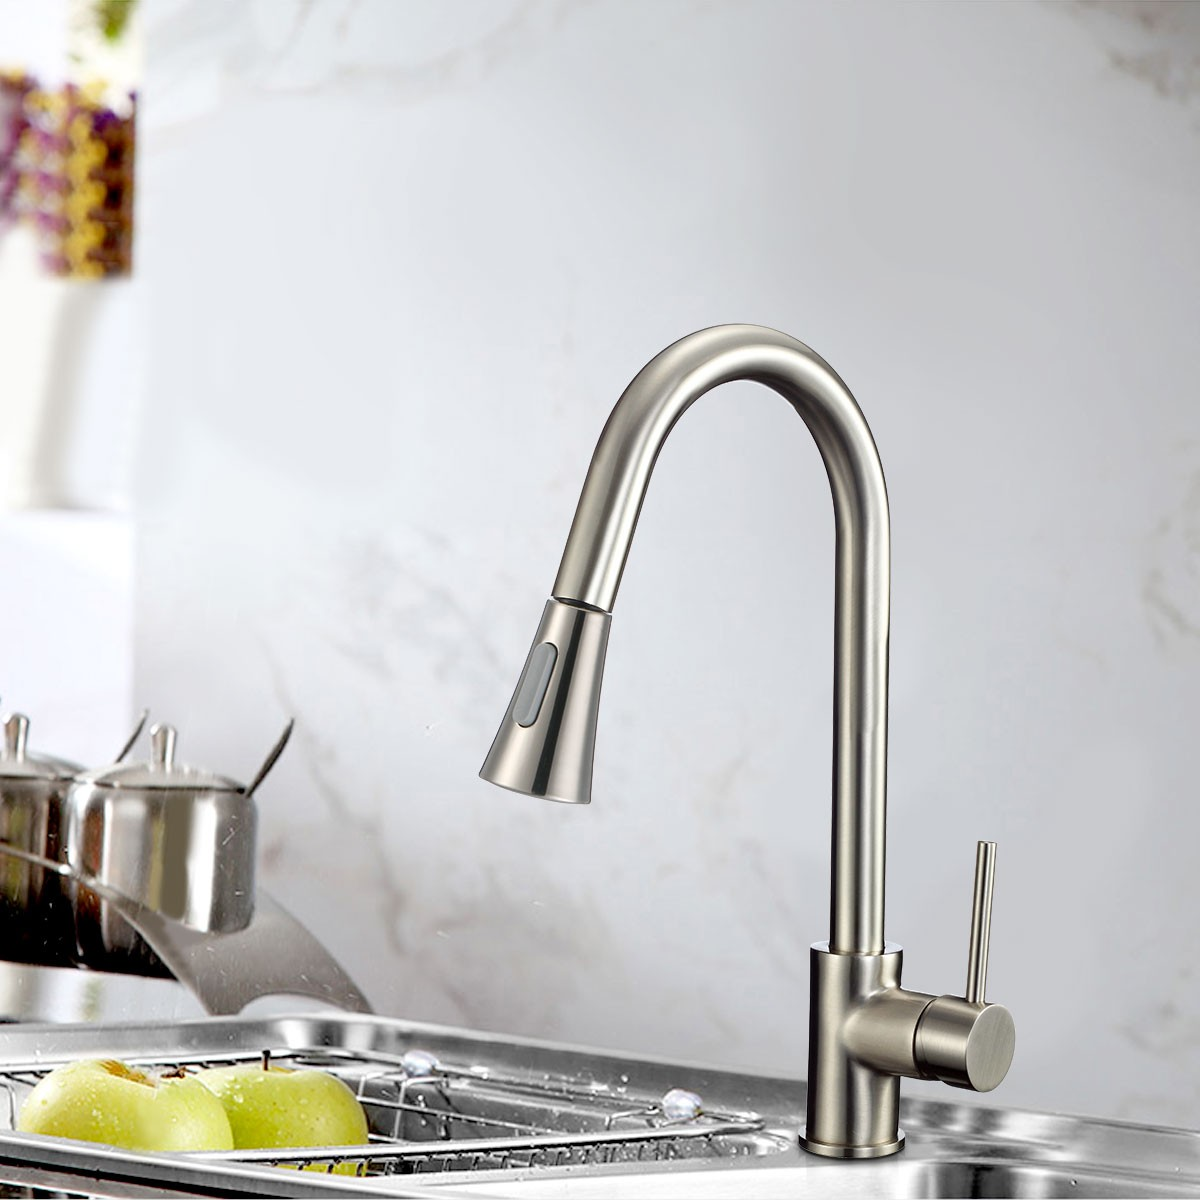 Brushed Nickel Finished Brass Kitchen Faucet - Pull Out Spray Head ...